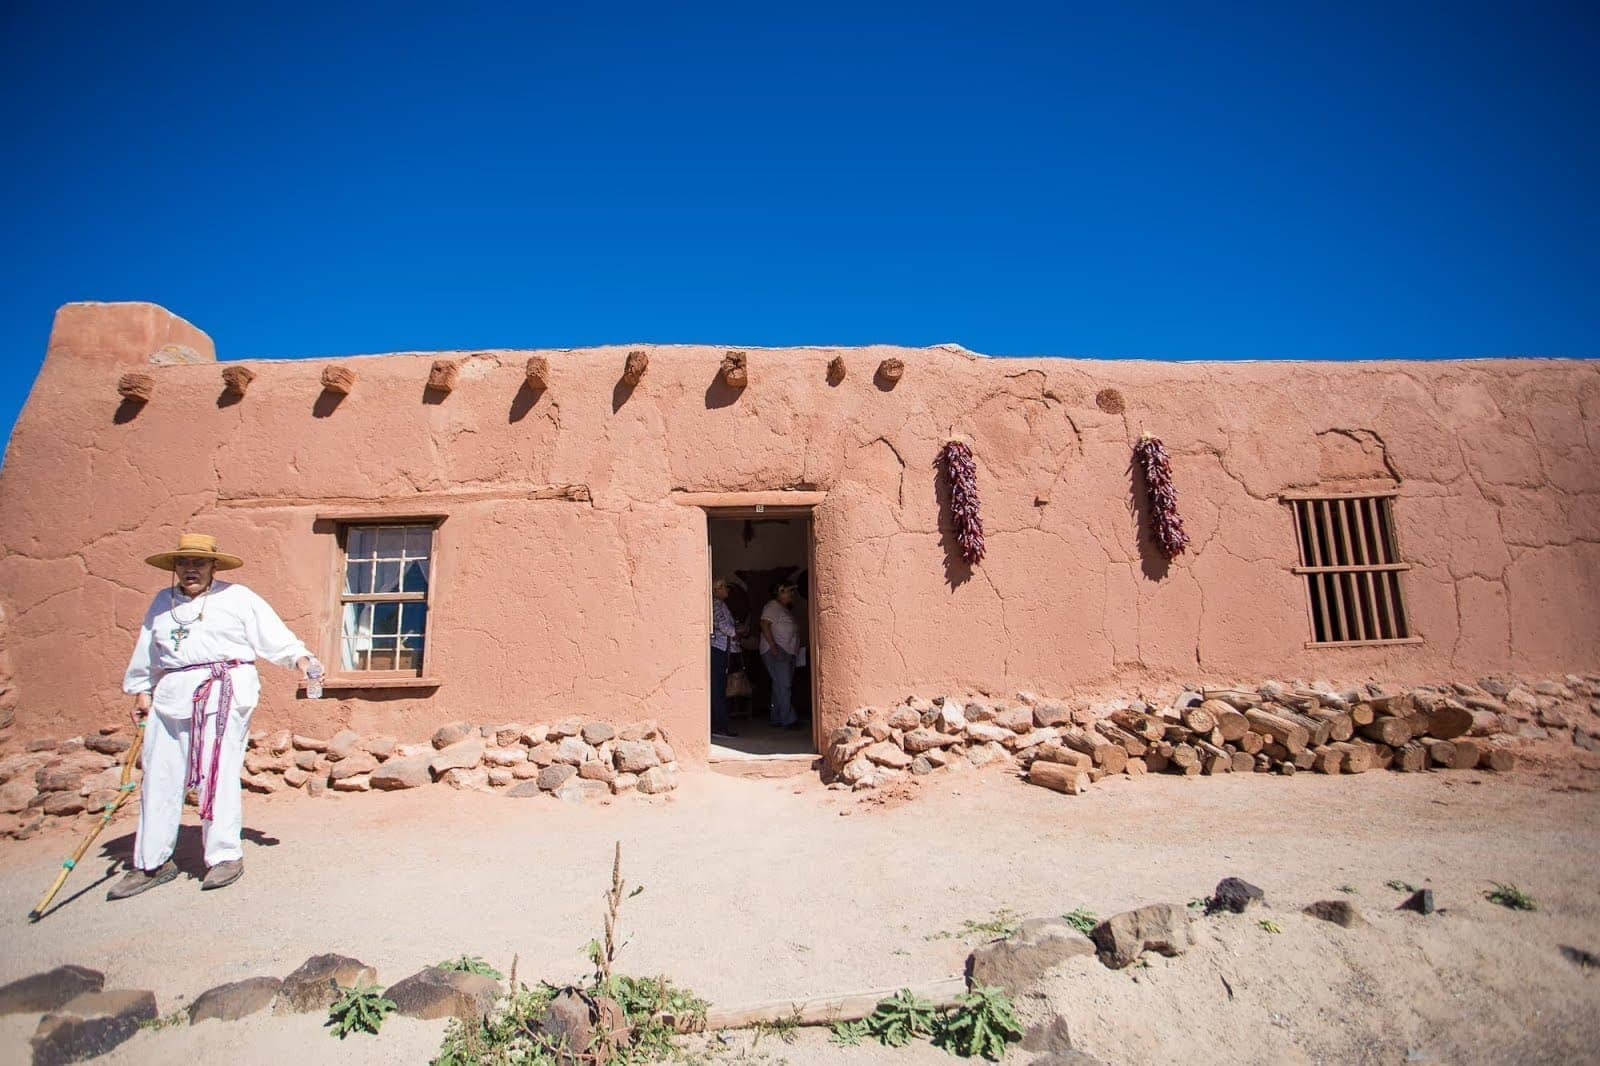 Things to do in Santa Fe New Mexico - El Rancho de las Golondrinas Santa Fe New Mexico by Laurence Norah-4